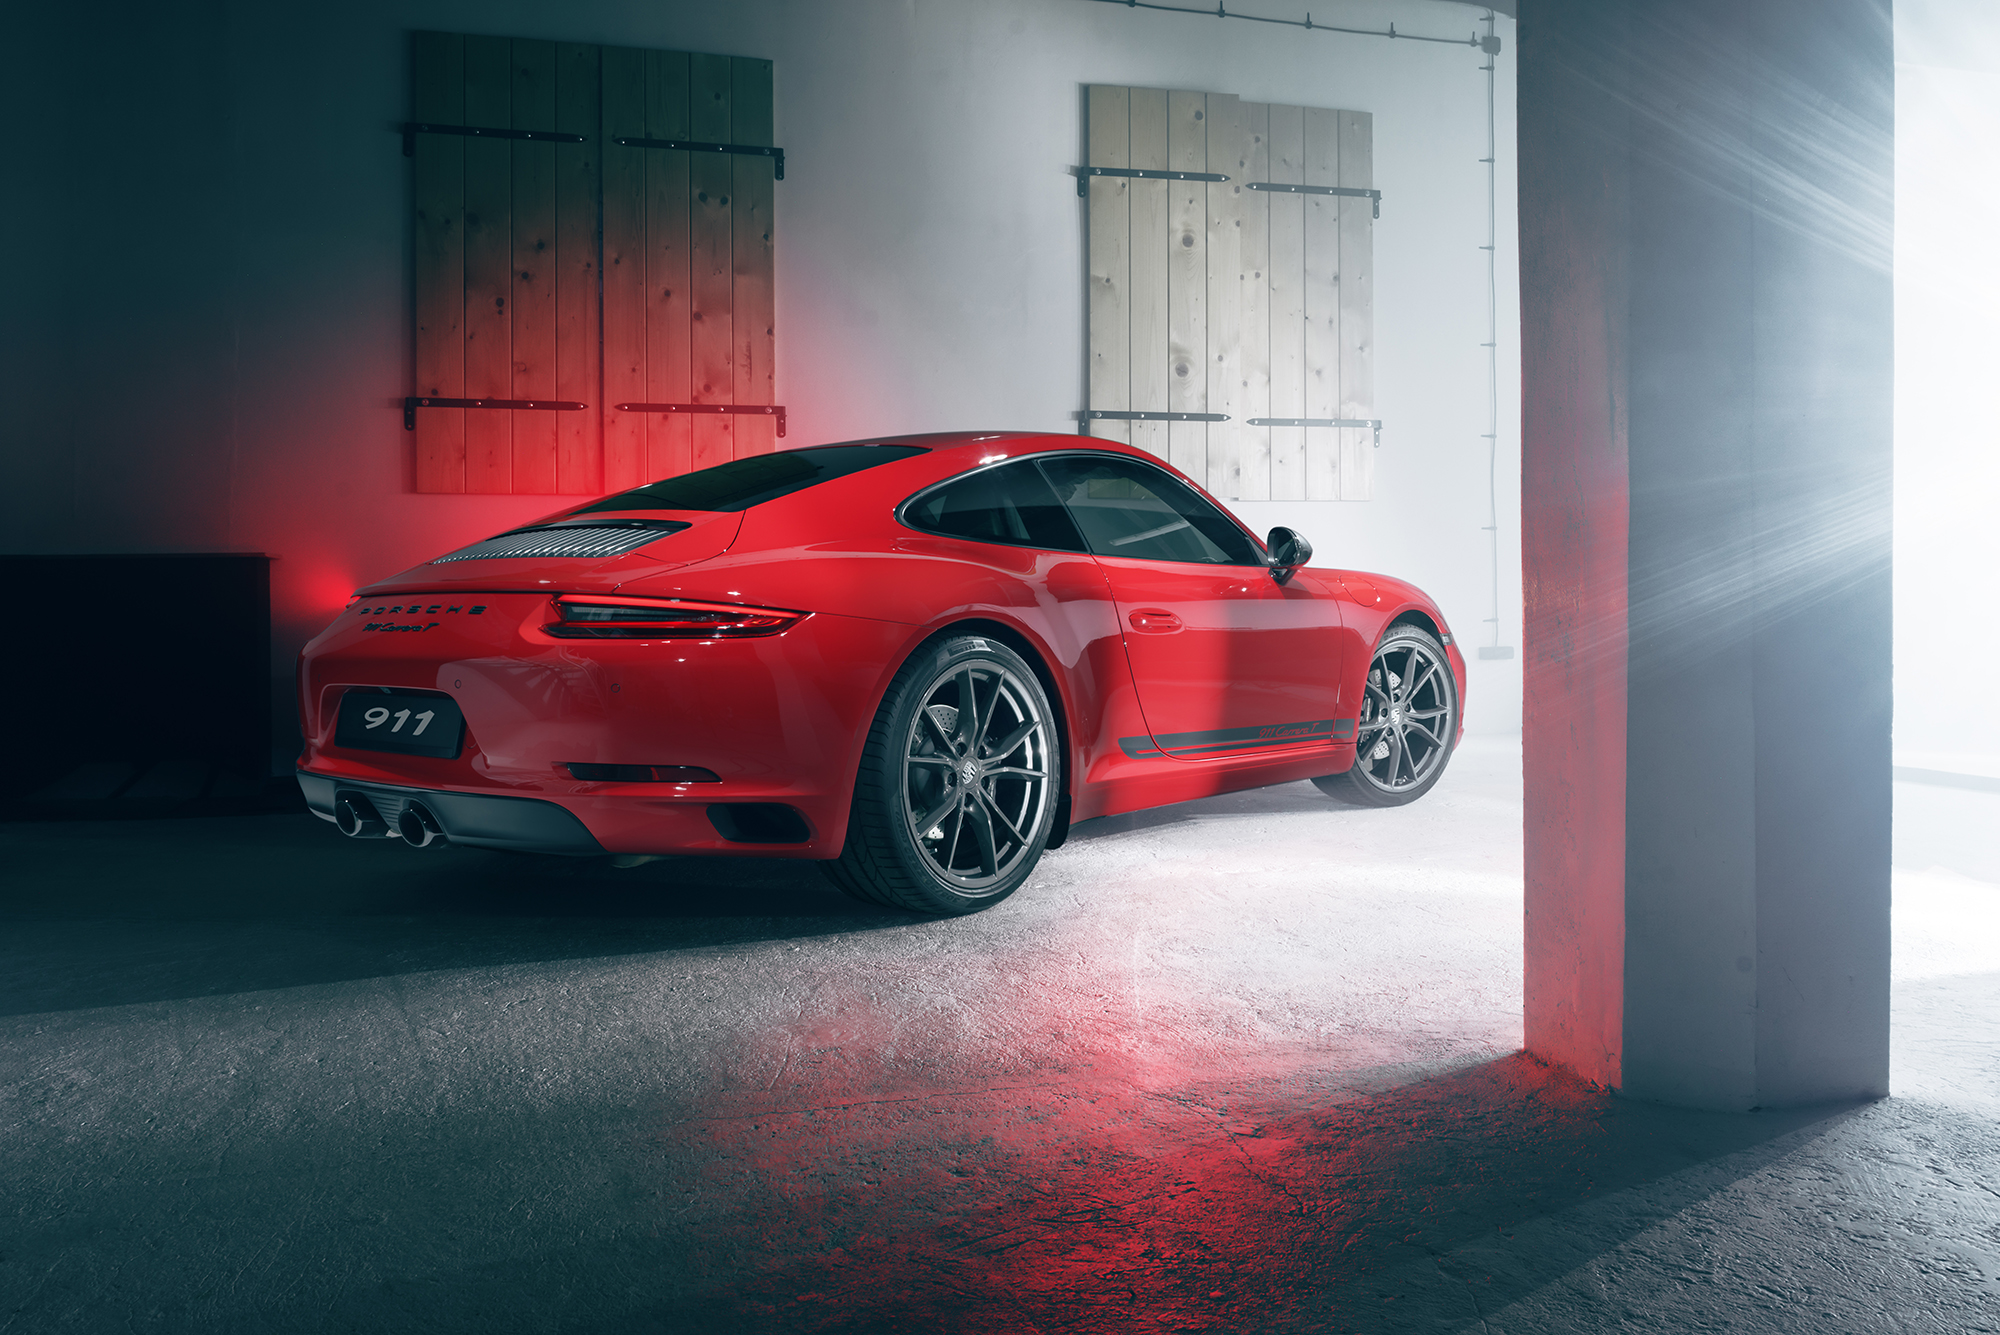 2560x1440 Porsche 911 Carrera T 2018 1440p Resolution Hd 4k Wallpapers Images Backgrounds Photos And Pictures Porsche 911 carrera t coupe 2018 4k